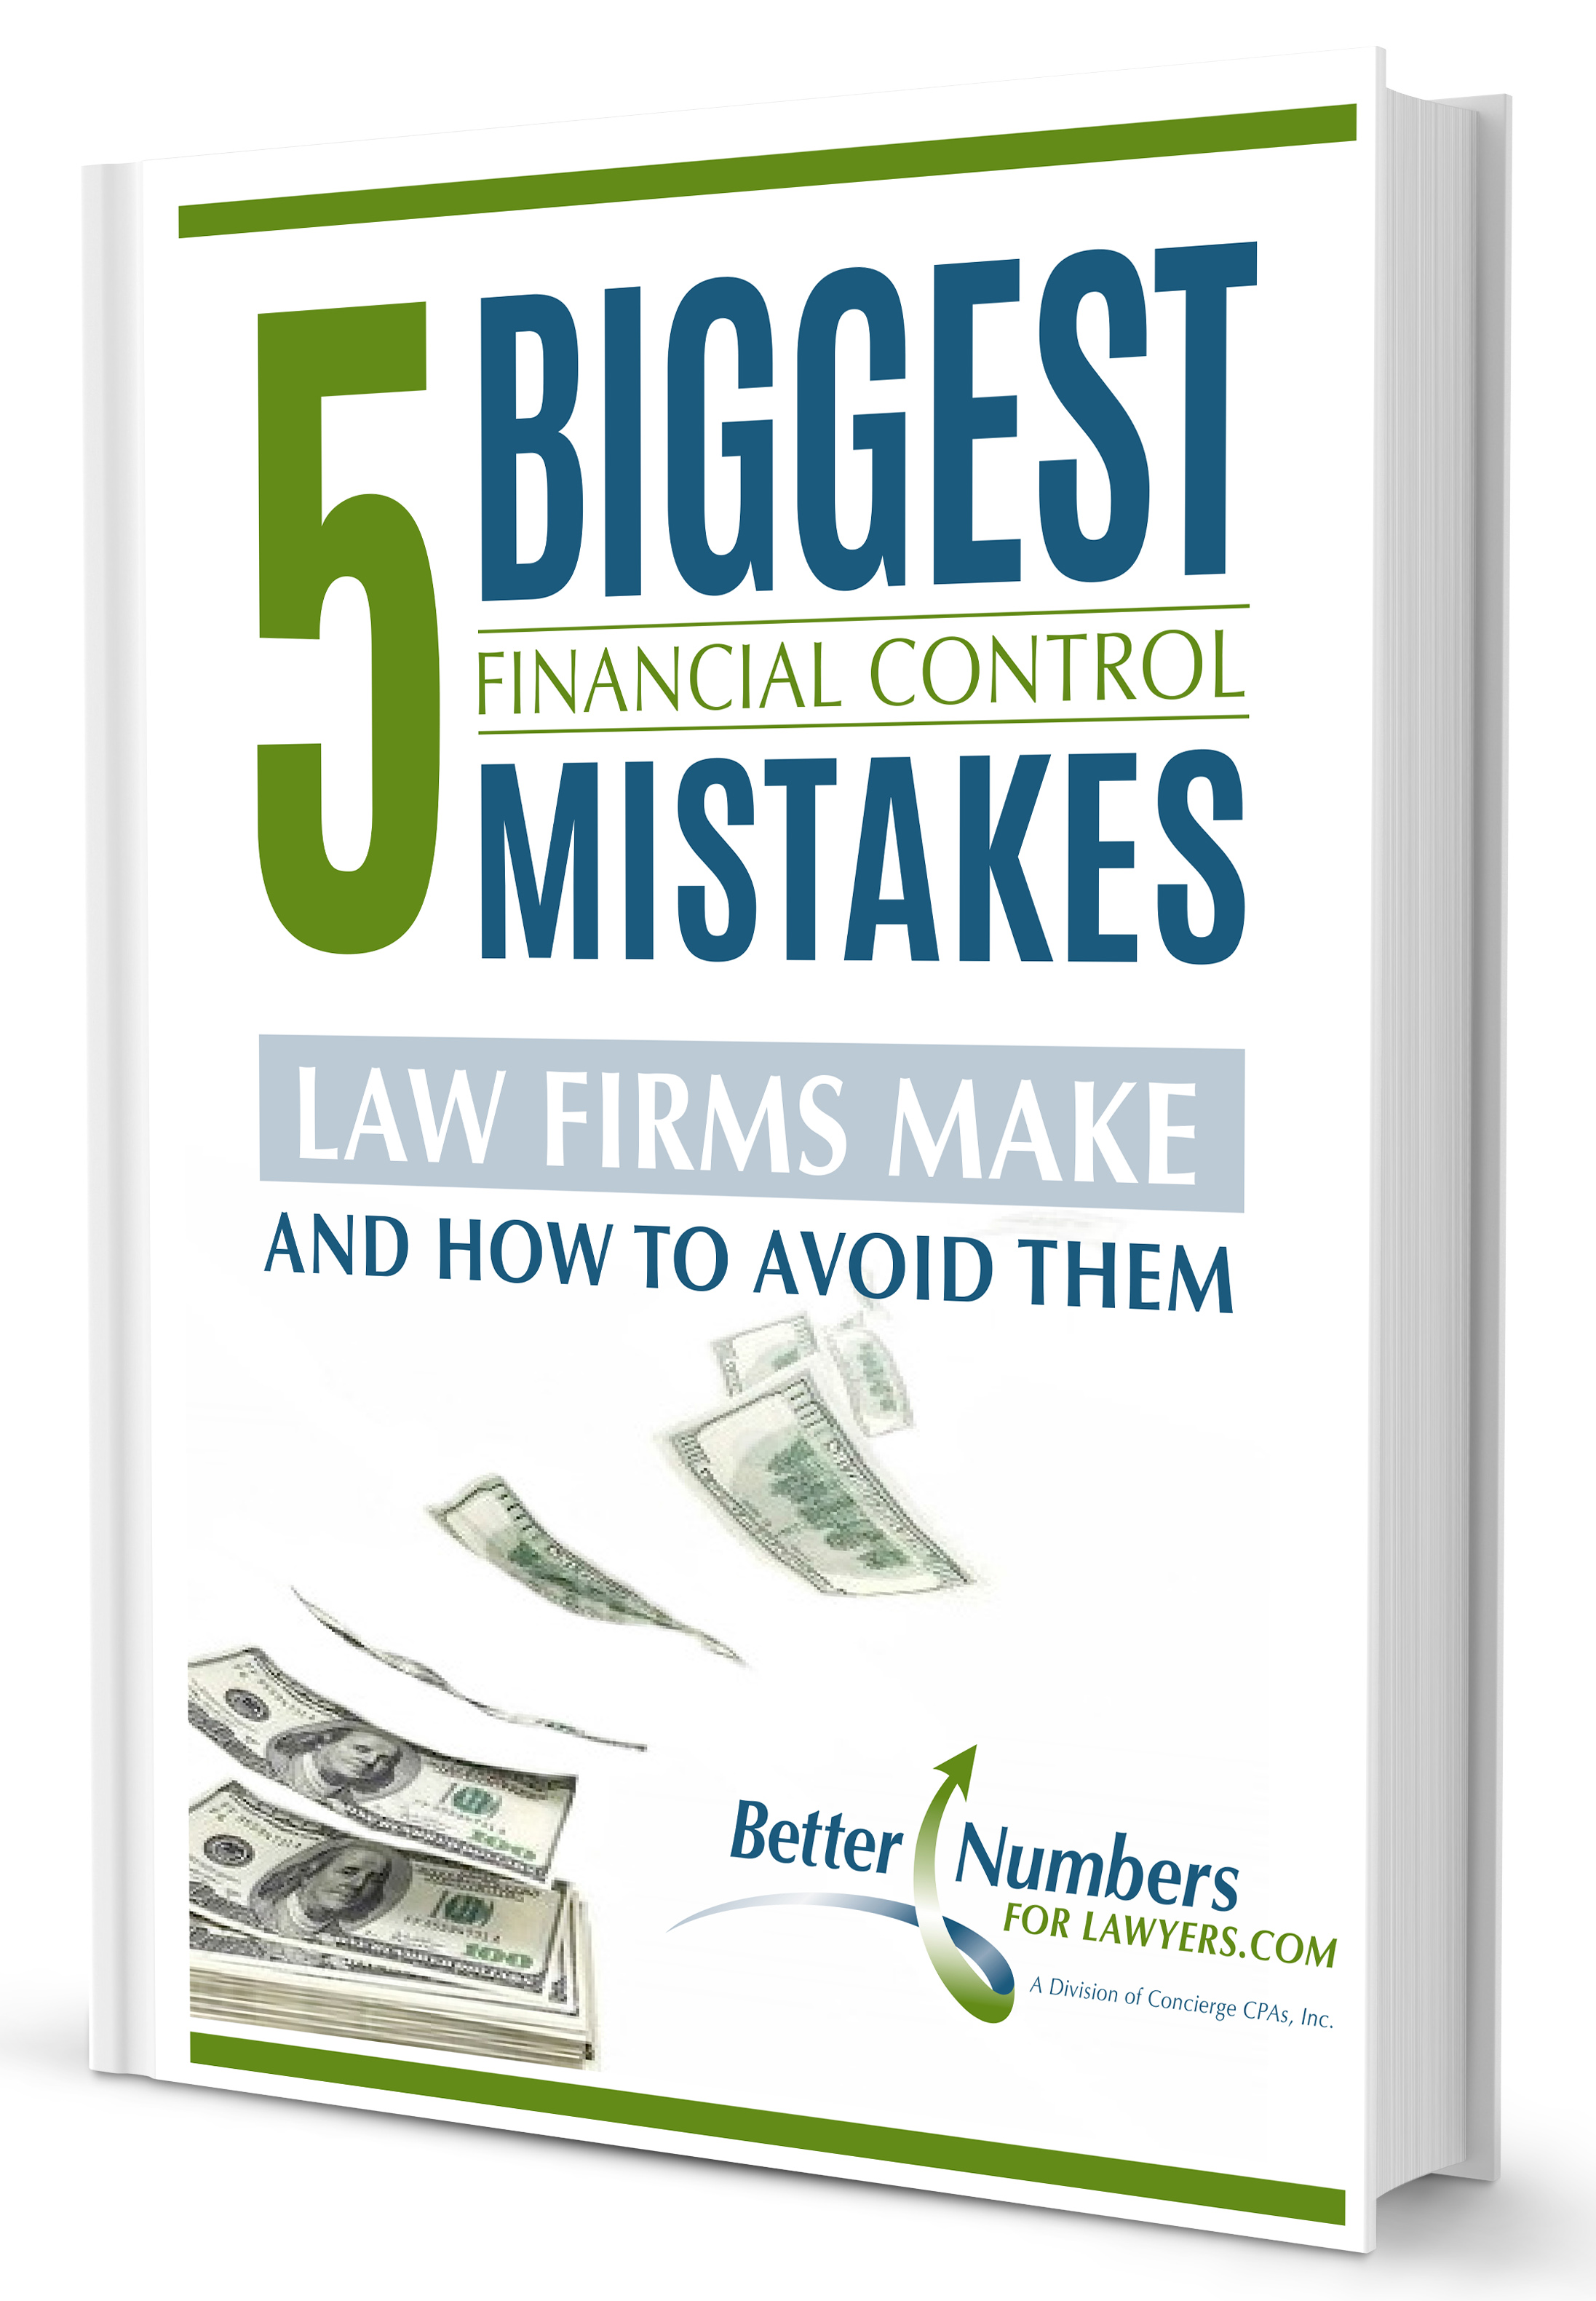 Download the eBook here!